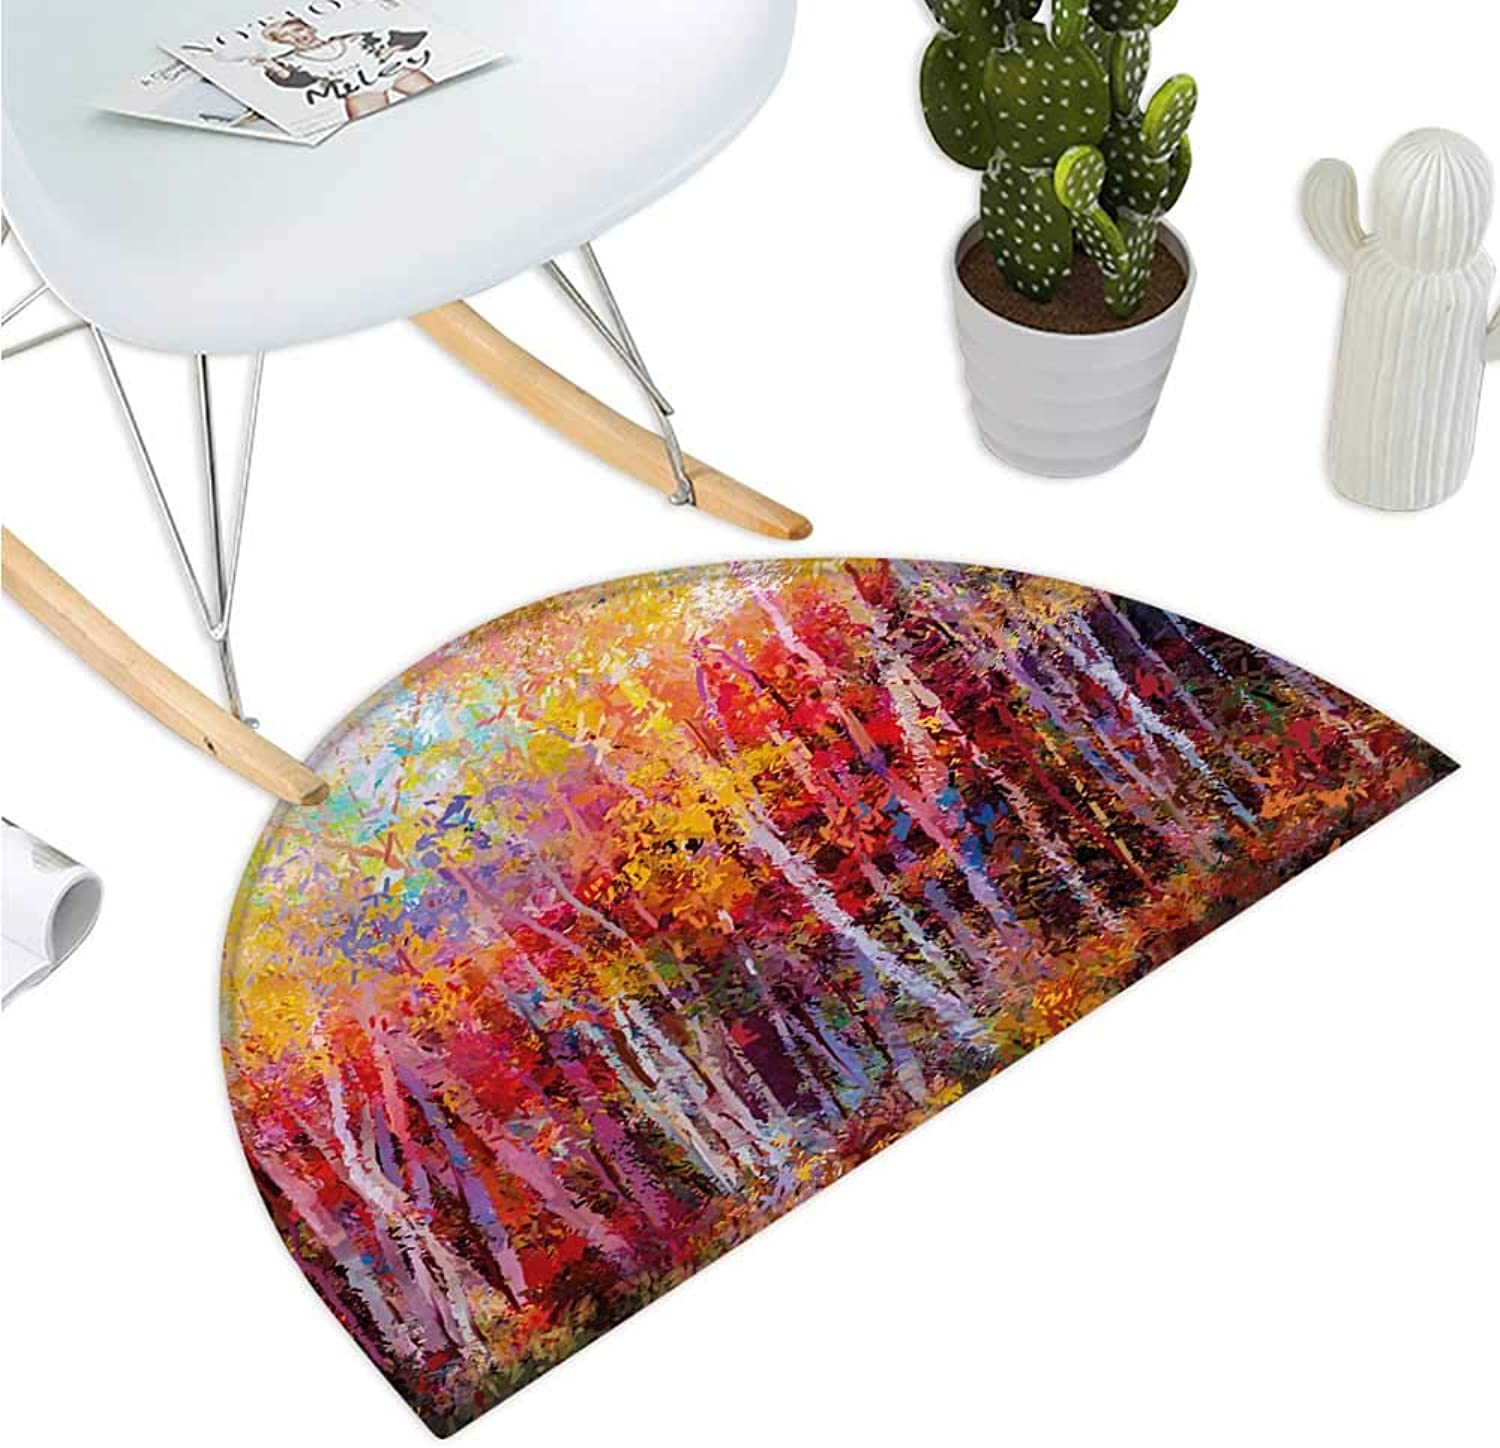 Nature Semicircle Doormat Vibrant Nature Painting with Trees in The Autumn Forest Impressionistic Artwork Halfmoon doormats H 39.3  xD 59  orange Yellow